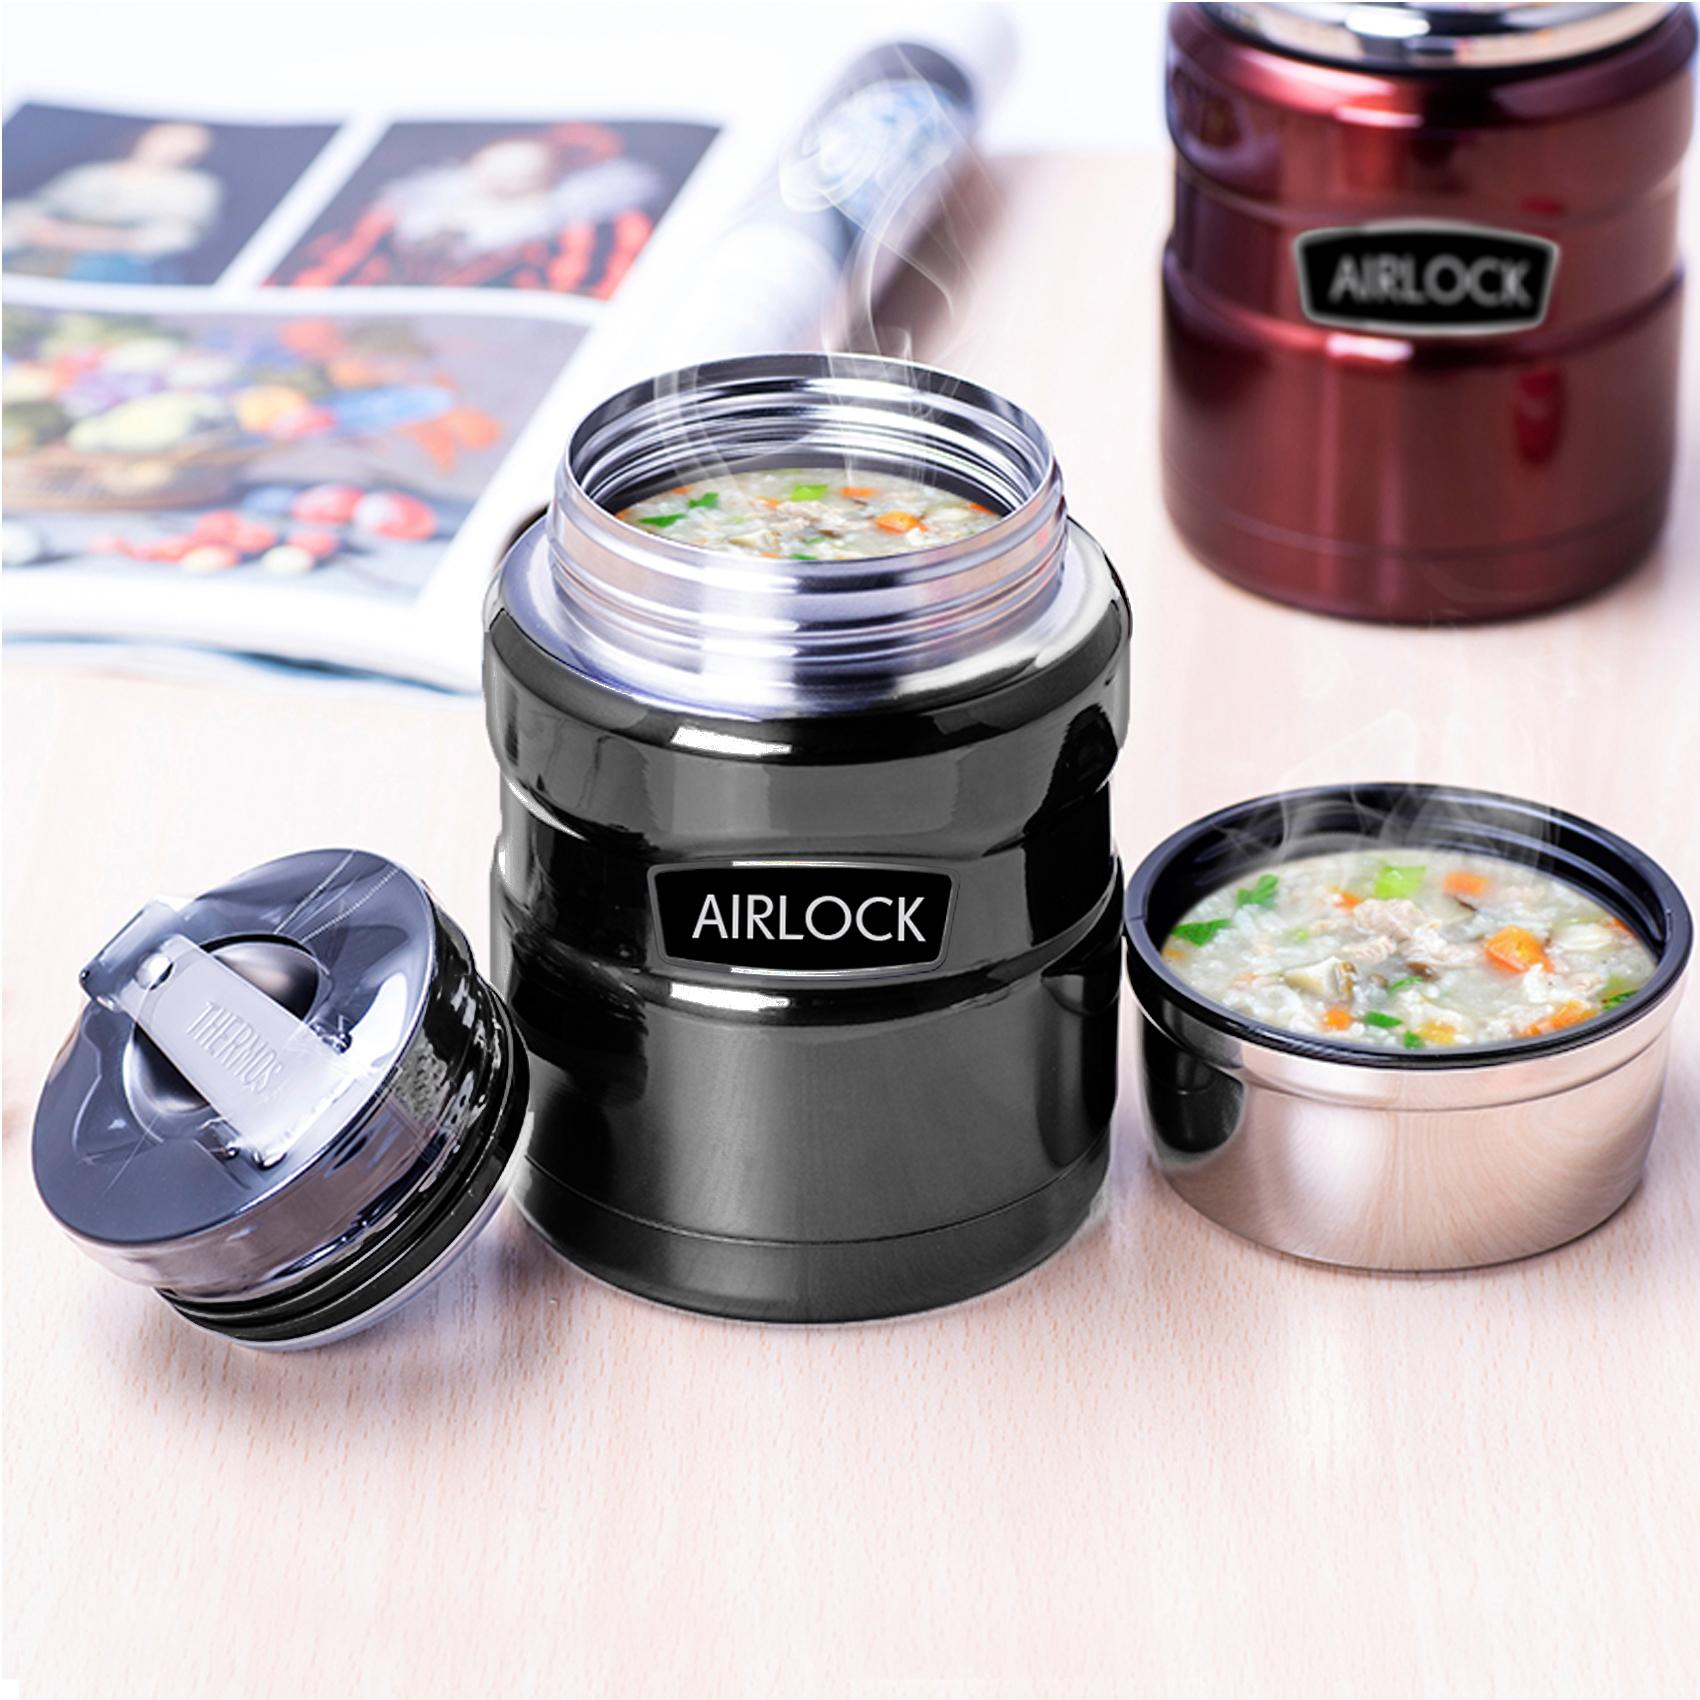 700ml Airlock Stainless Steel Vacuum Insulation Barrel Stew Beaker (gray) By Latest Gadget.